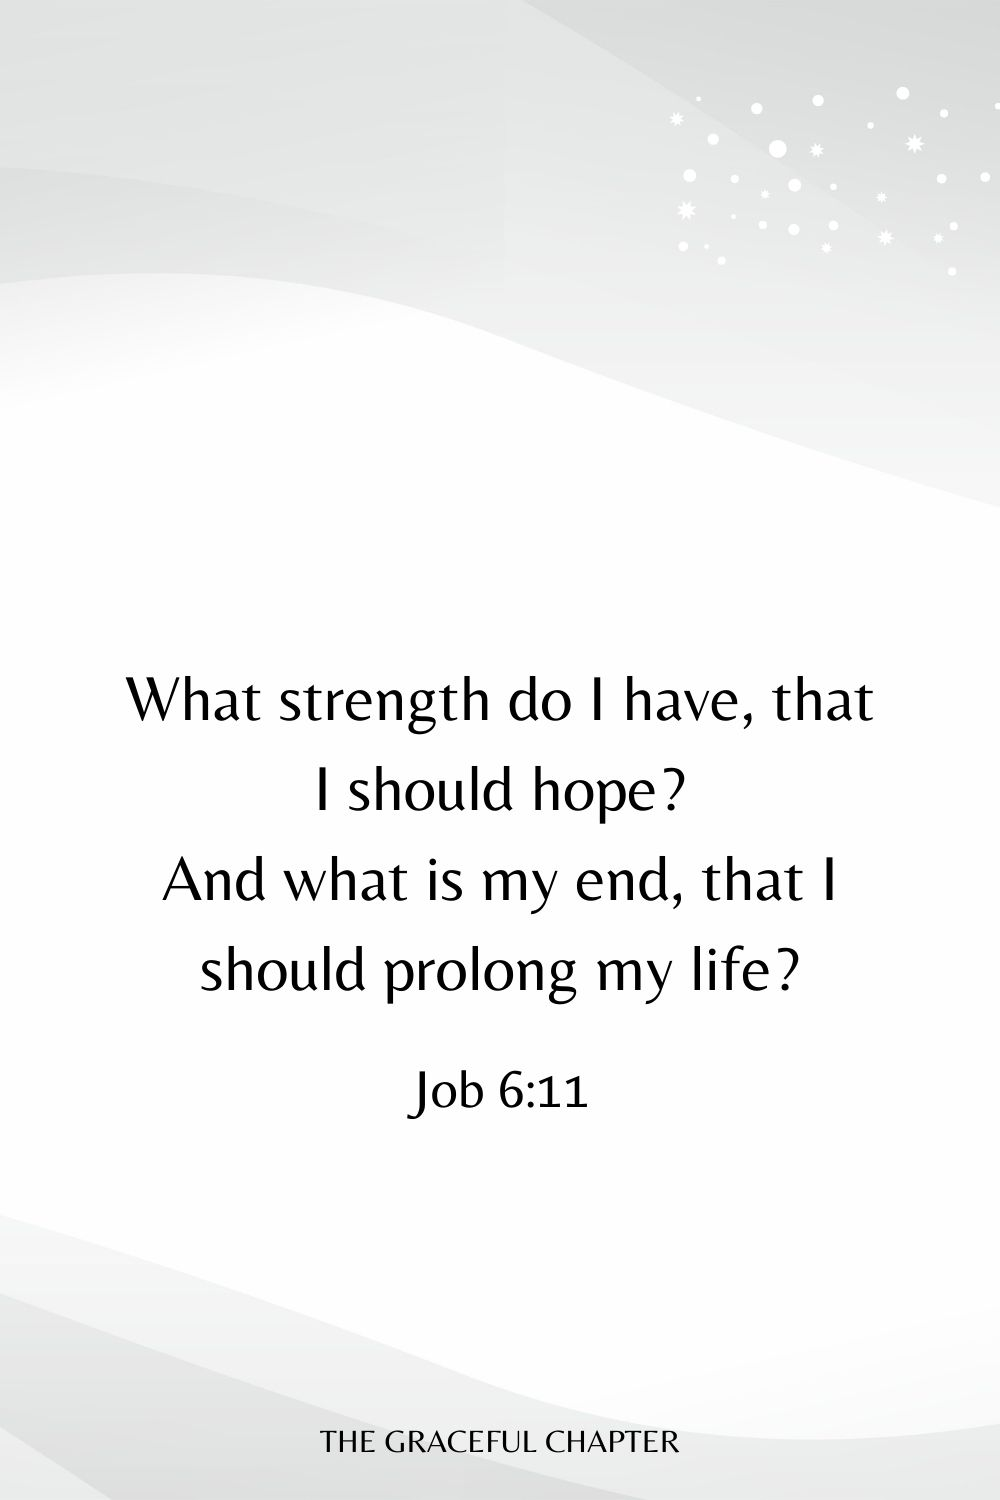 What strength do I have, that I should hope? And what is my end, that I should prolong my life? Job 6:11